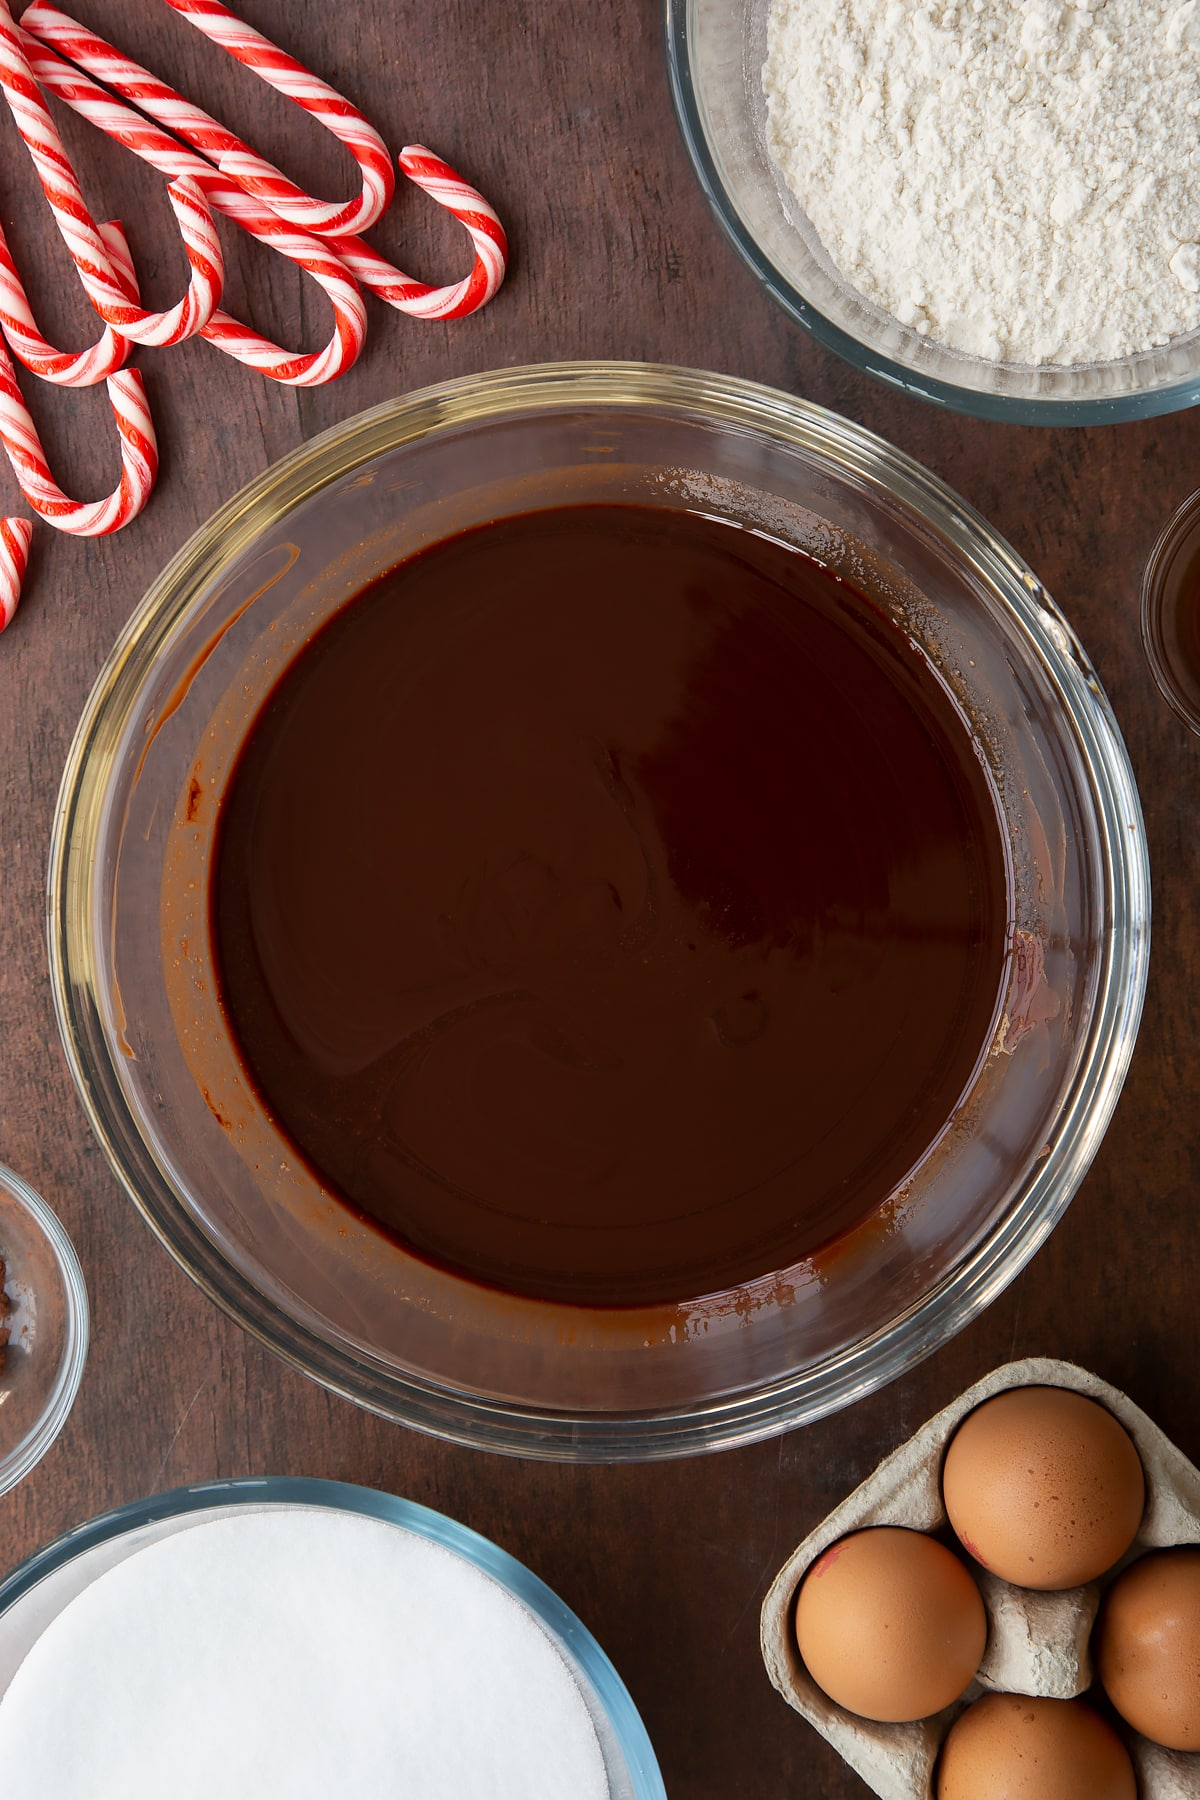 Melted butter and dark chocolate in a glass bowl. Ingredients to make Candy cane brownies surround the bowl.